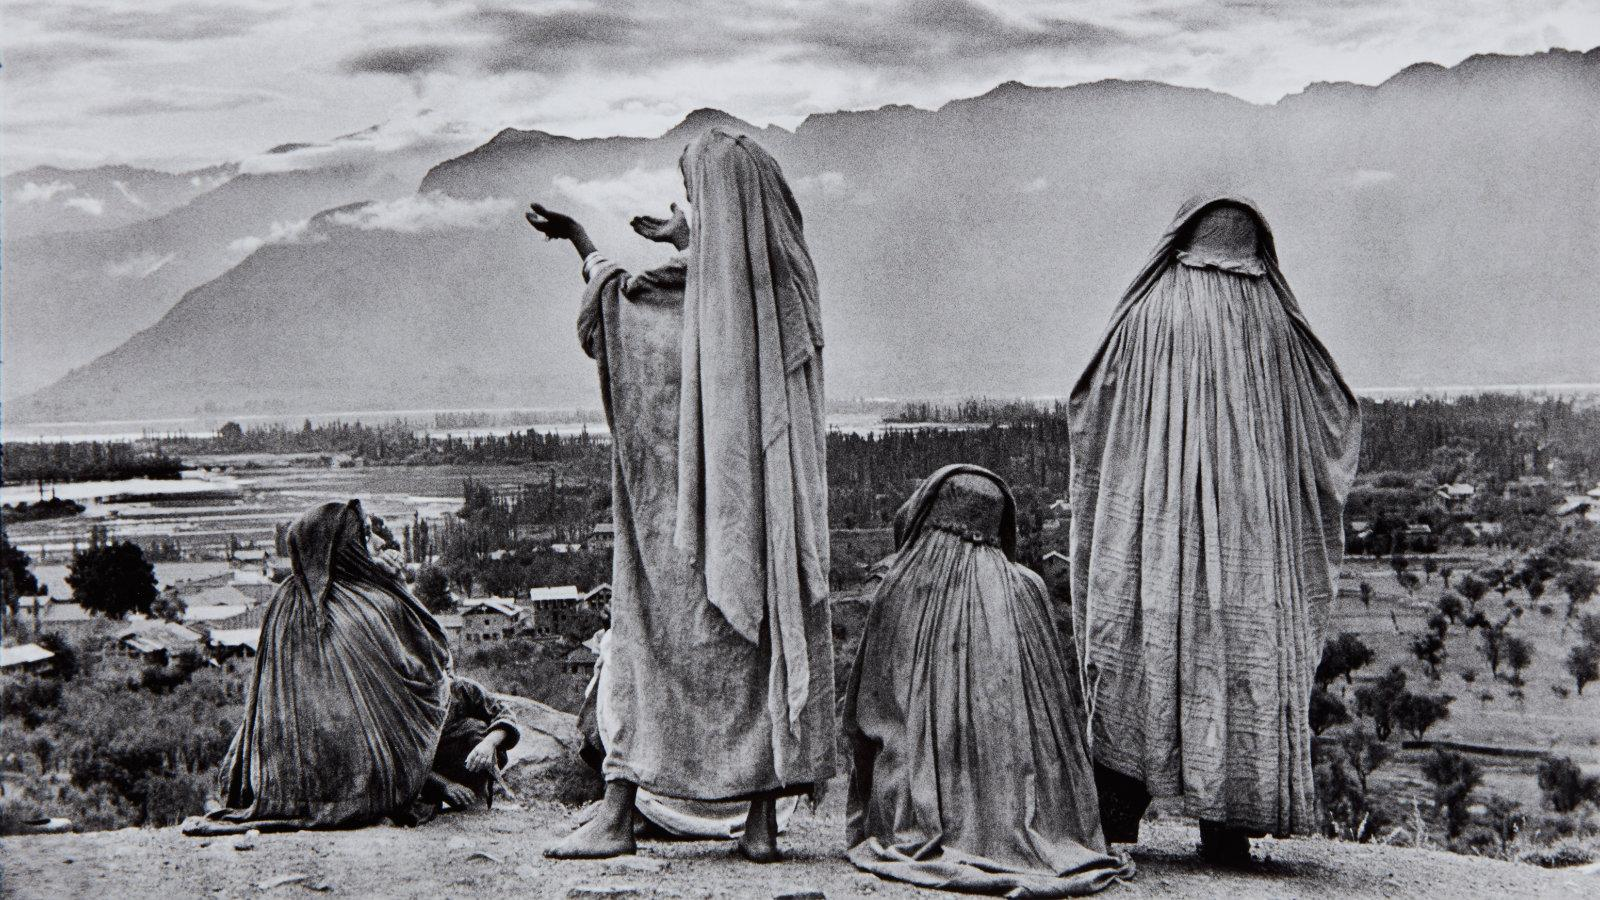 Henri Cartier Bressons historic photos of India are to be 1600x900